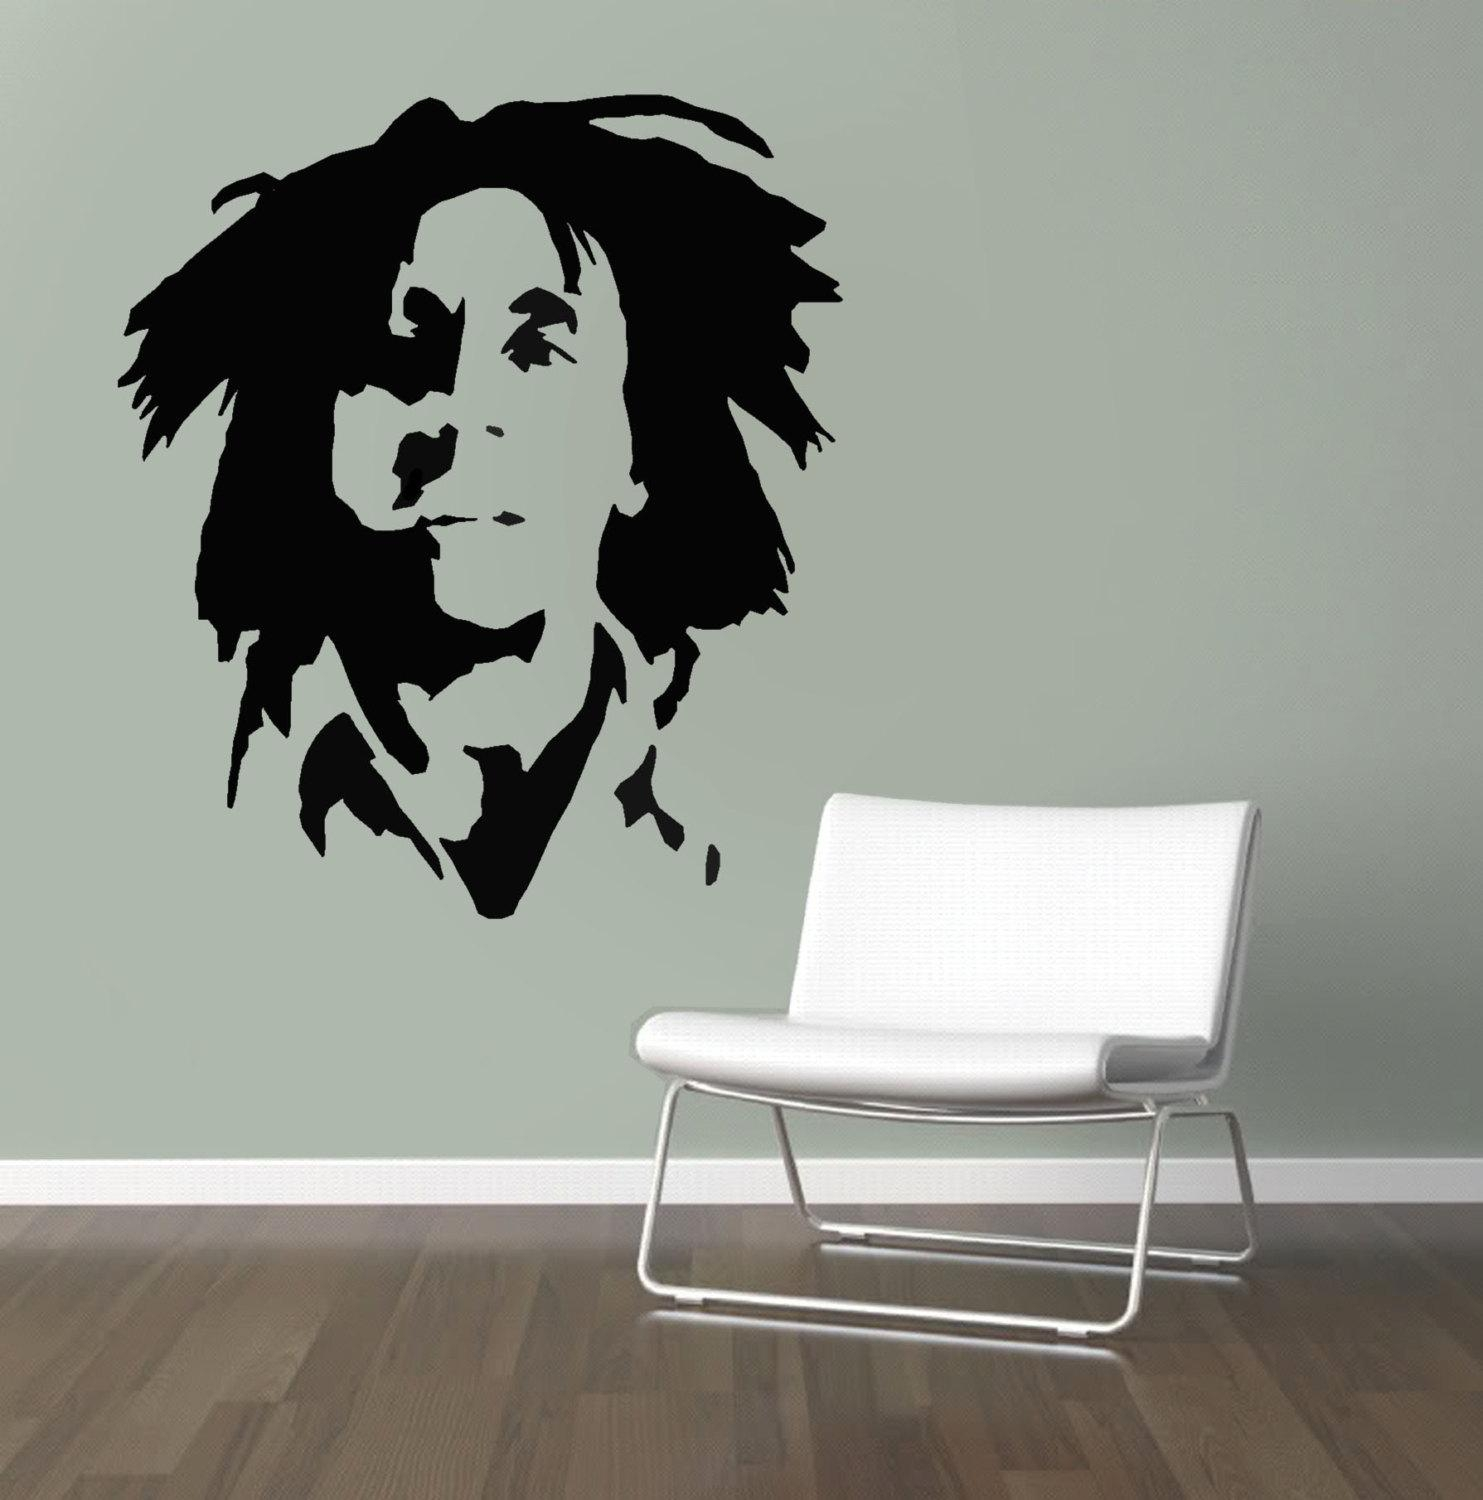 Bob Marley Stencil Reusable Stencil For Home Decor Create Throughout Bob Marley Wall Art (Image 7 of 20)